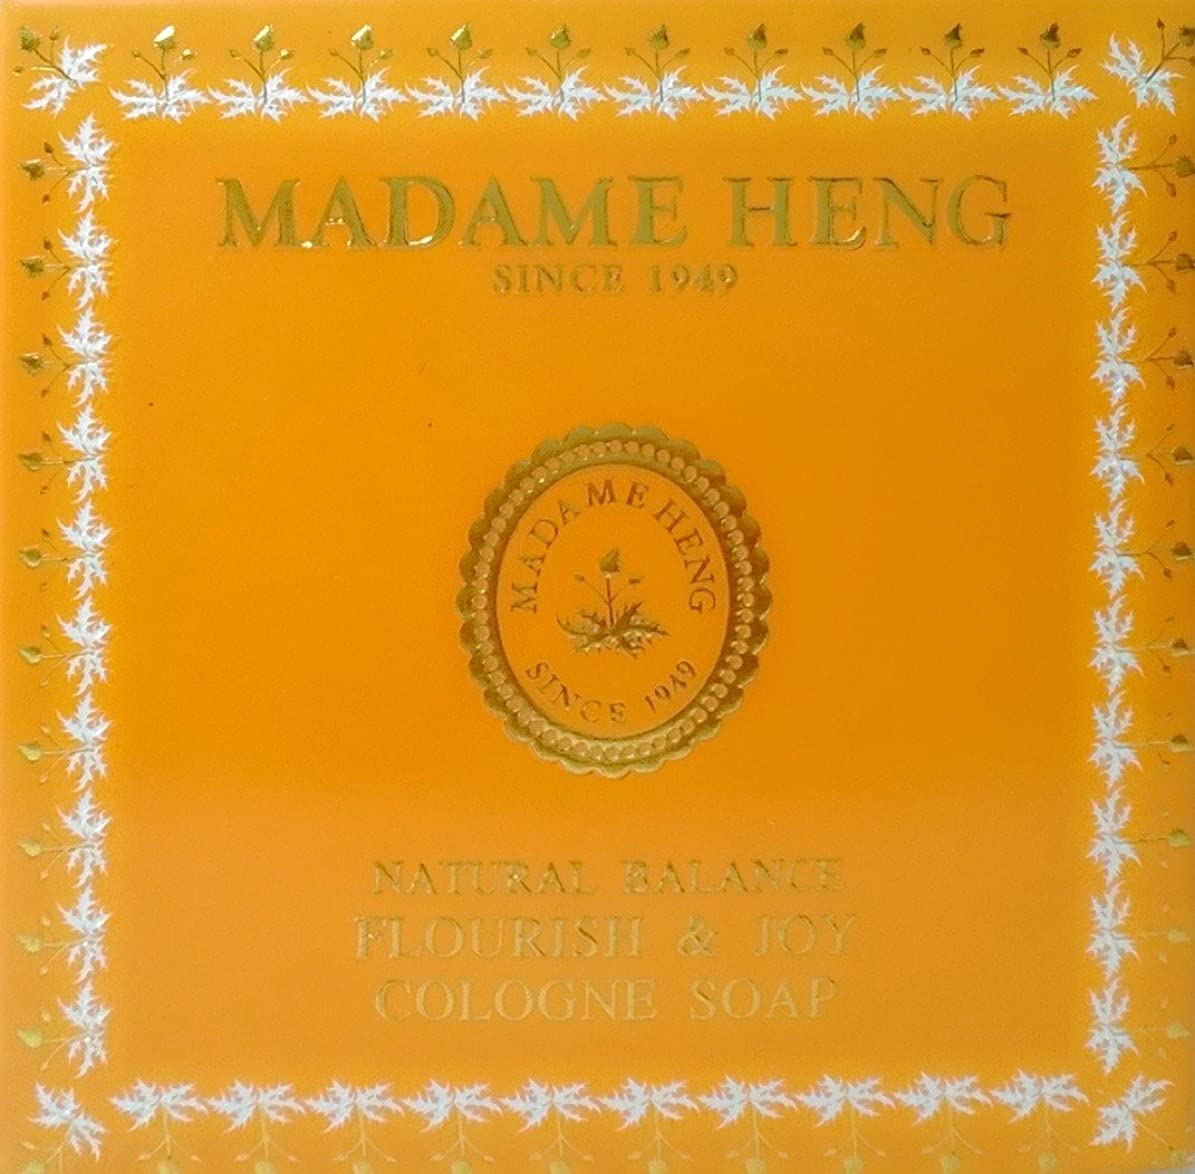 最大限公園ドナーMADAME HENG NATURAL BALANCE FLOURISH & JOY COLOGNE SOAP